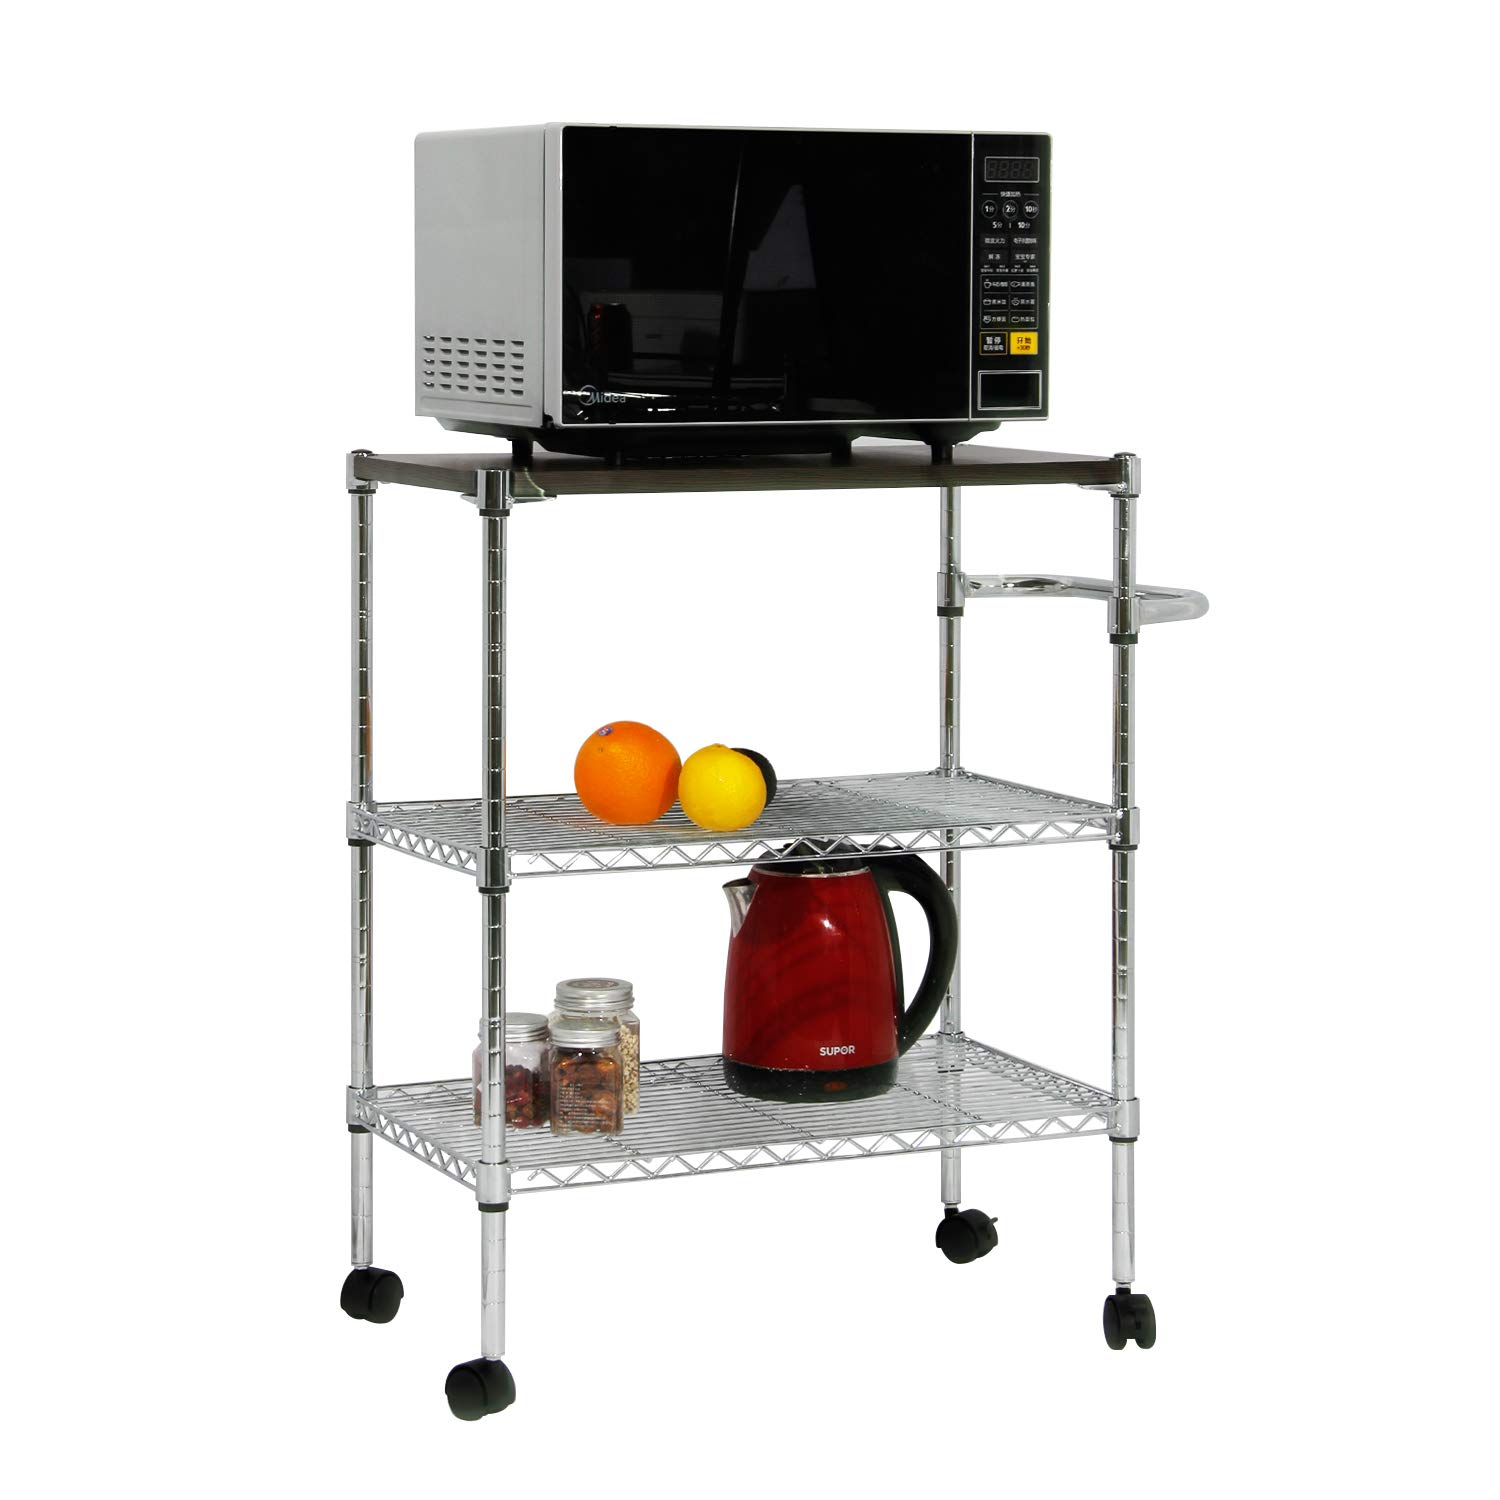 DlandHome 3-Tier Storage Shelf Unit On Wheels, Heavy Duty Low-Carbon Mesh Steel, Serving Cart Utility Cart with Handle for Kitchen/Restaurant/ Hotel, ZSCS-03 1 Pack DZSCS-03